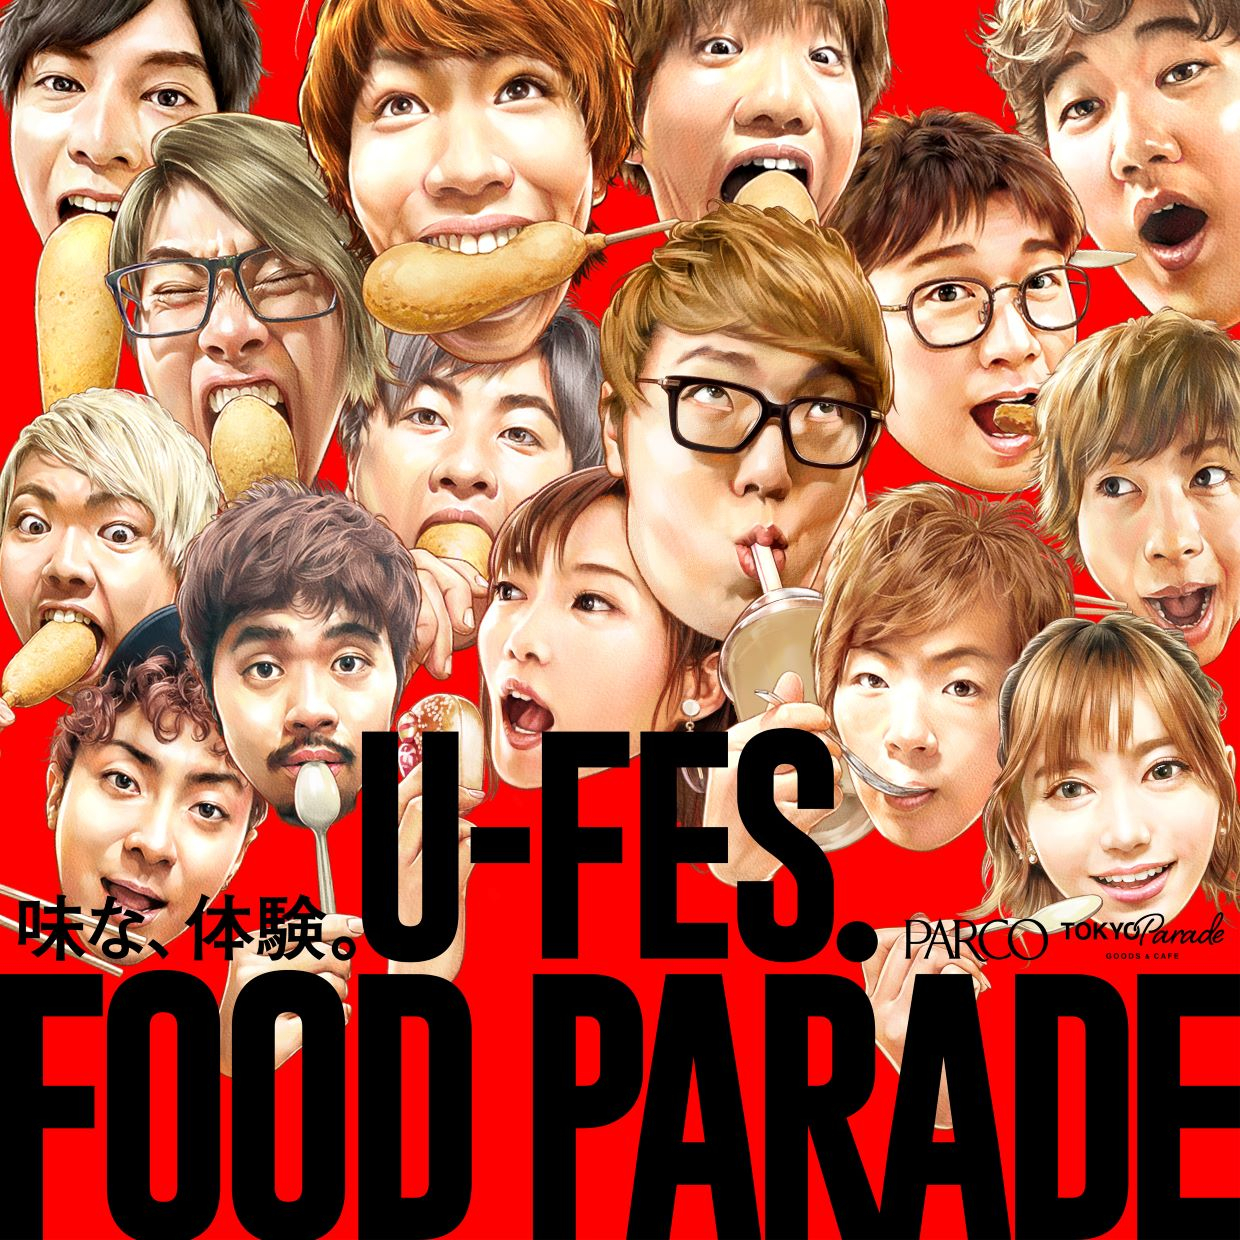 U-FES. FOOD PARADE